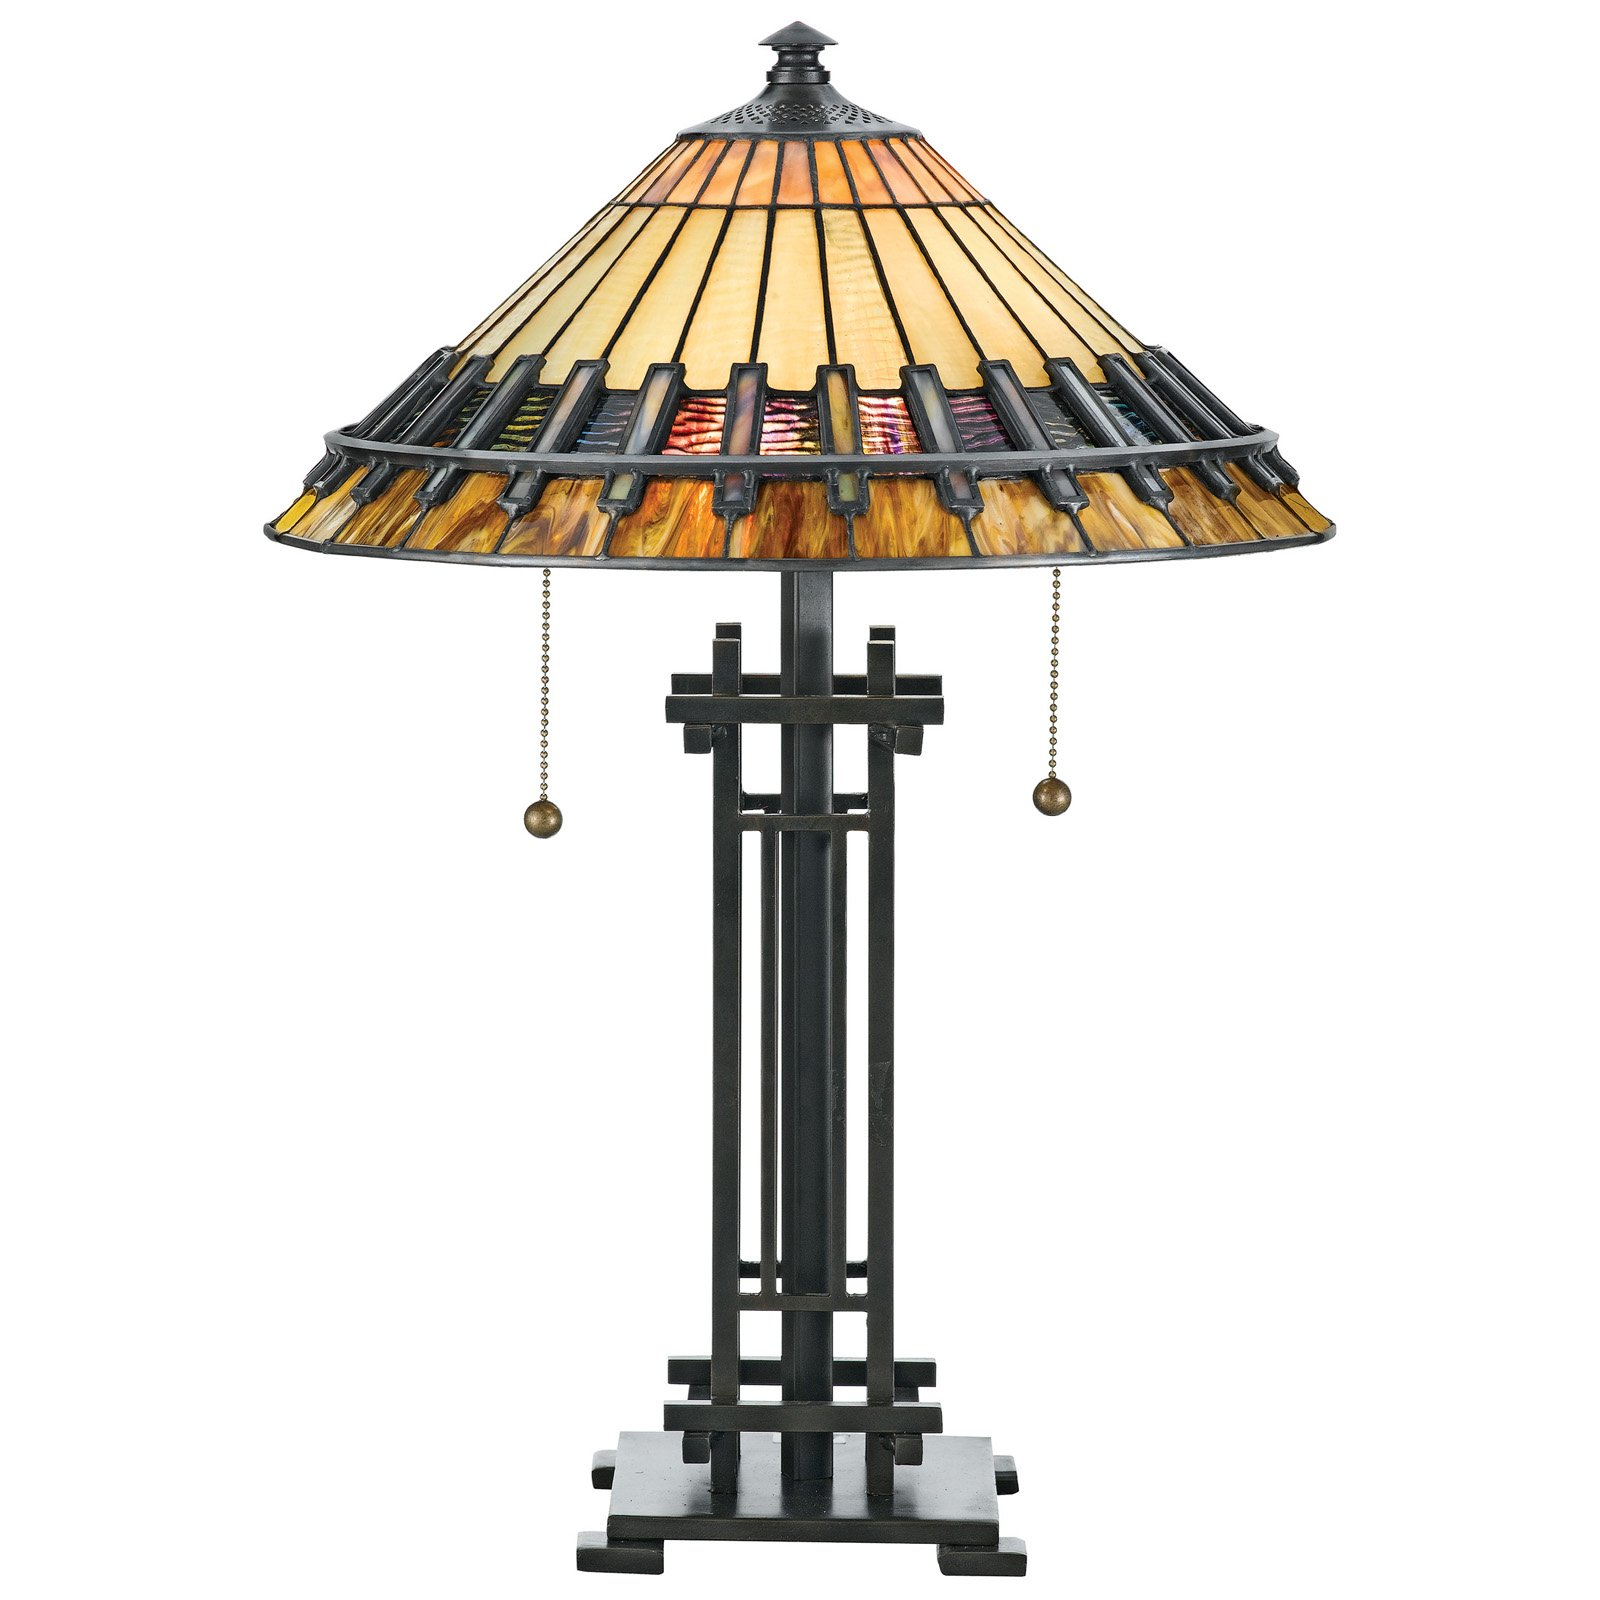 Chandelier tiffany lamps lighting ceiling fans on deluxe interior lighting design - Chandelier desk lamp ...